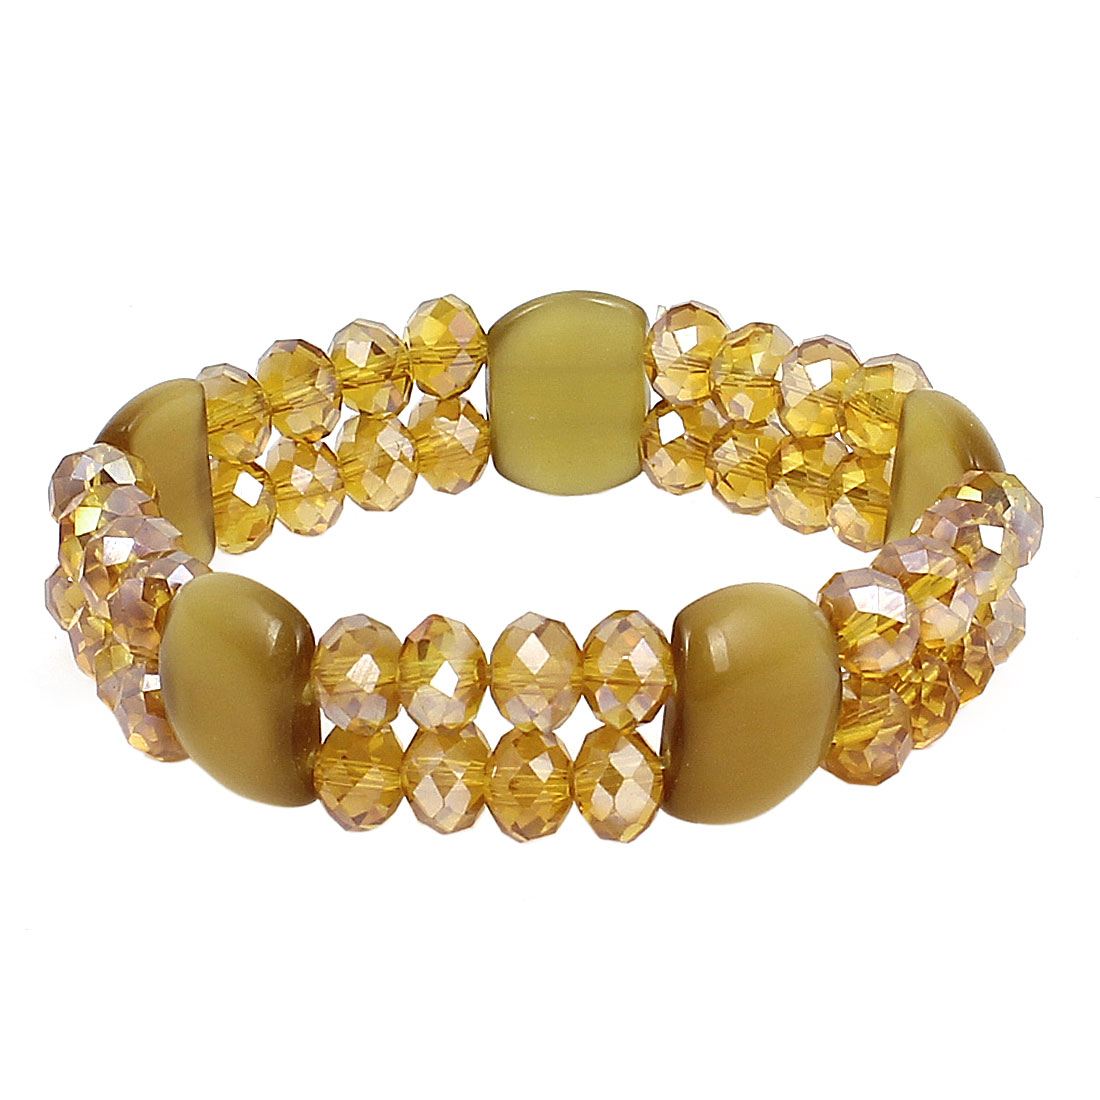 Lady Faux Crystal Ornament Round Square Bead Linked Elastic Wrist Chain Bangle Bracelet Yellow